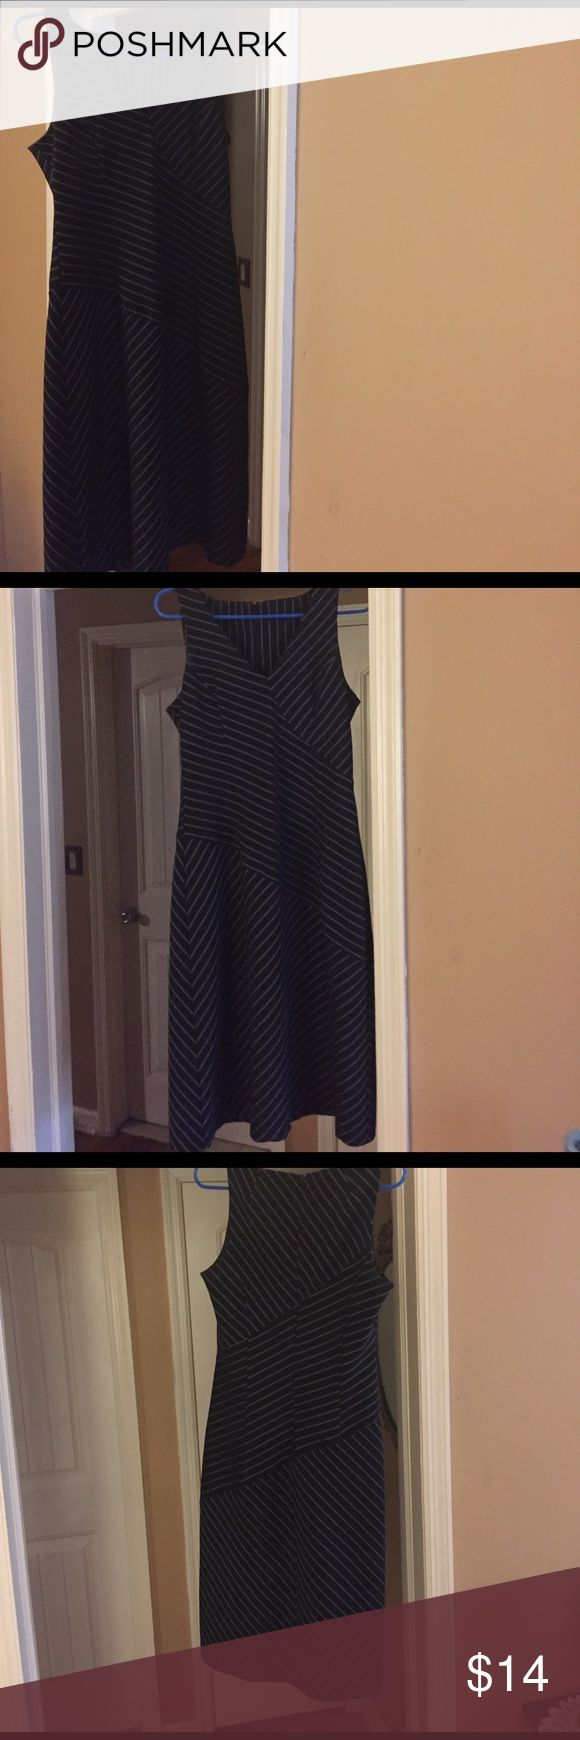 """Striped black and white dress. Striped sheath dress, back zipper, form fitting. I removed the back ticket since it felt scratchy. Back  zipper goes down to waist. Dress has elastic. Thick fabric, Good quality. Purchased at Bloomingdales. Barely worn in excellent condition,no longer fits. Measurements are: flat/relaxed Chest 15 1/2"""", stretched 17"""" (31""""-34""""), Waist 15"""" -16"""" (30-32) length 41"""" taken from the shoulder to bottom. Bottom opening 24"""". Person in the picture is 5 3"""" 125 lbs wears a…"""